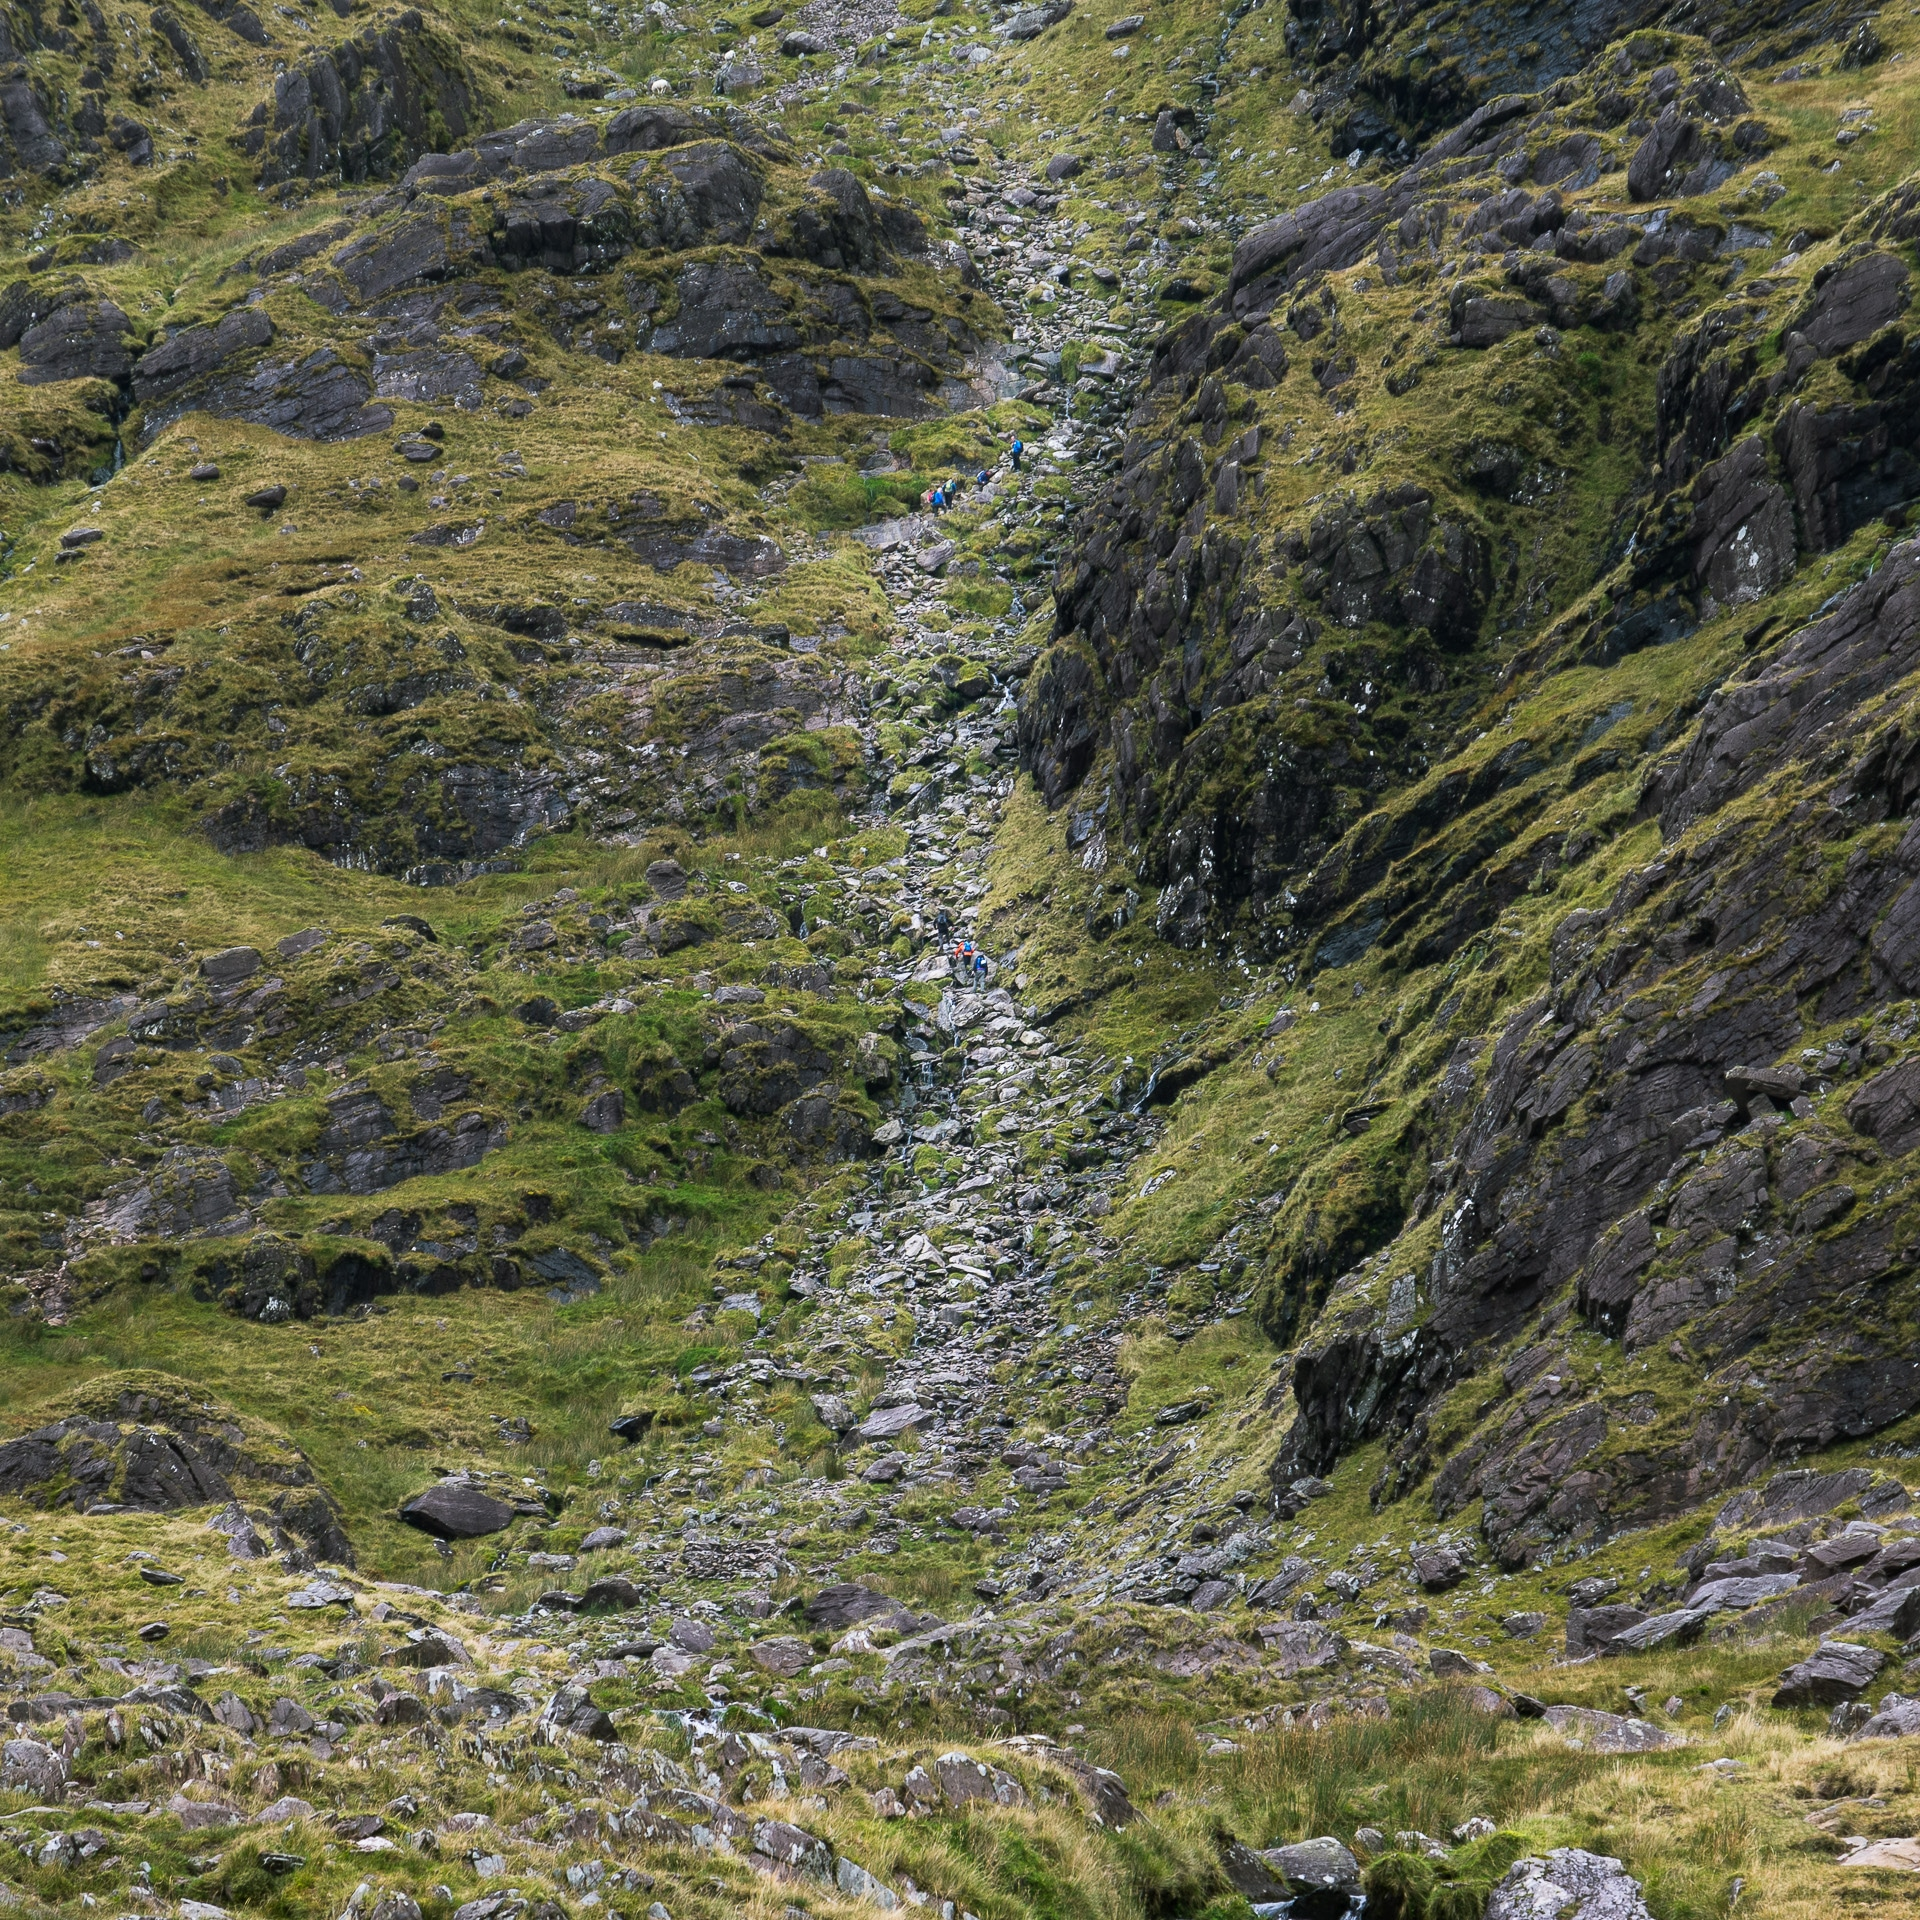 image of the gully known as Devil's ladder